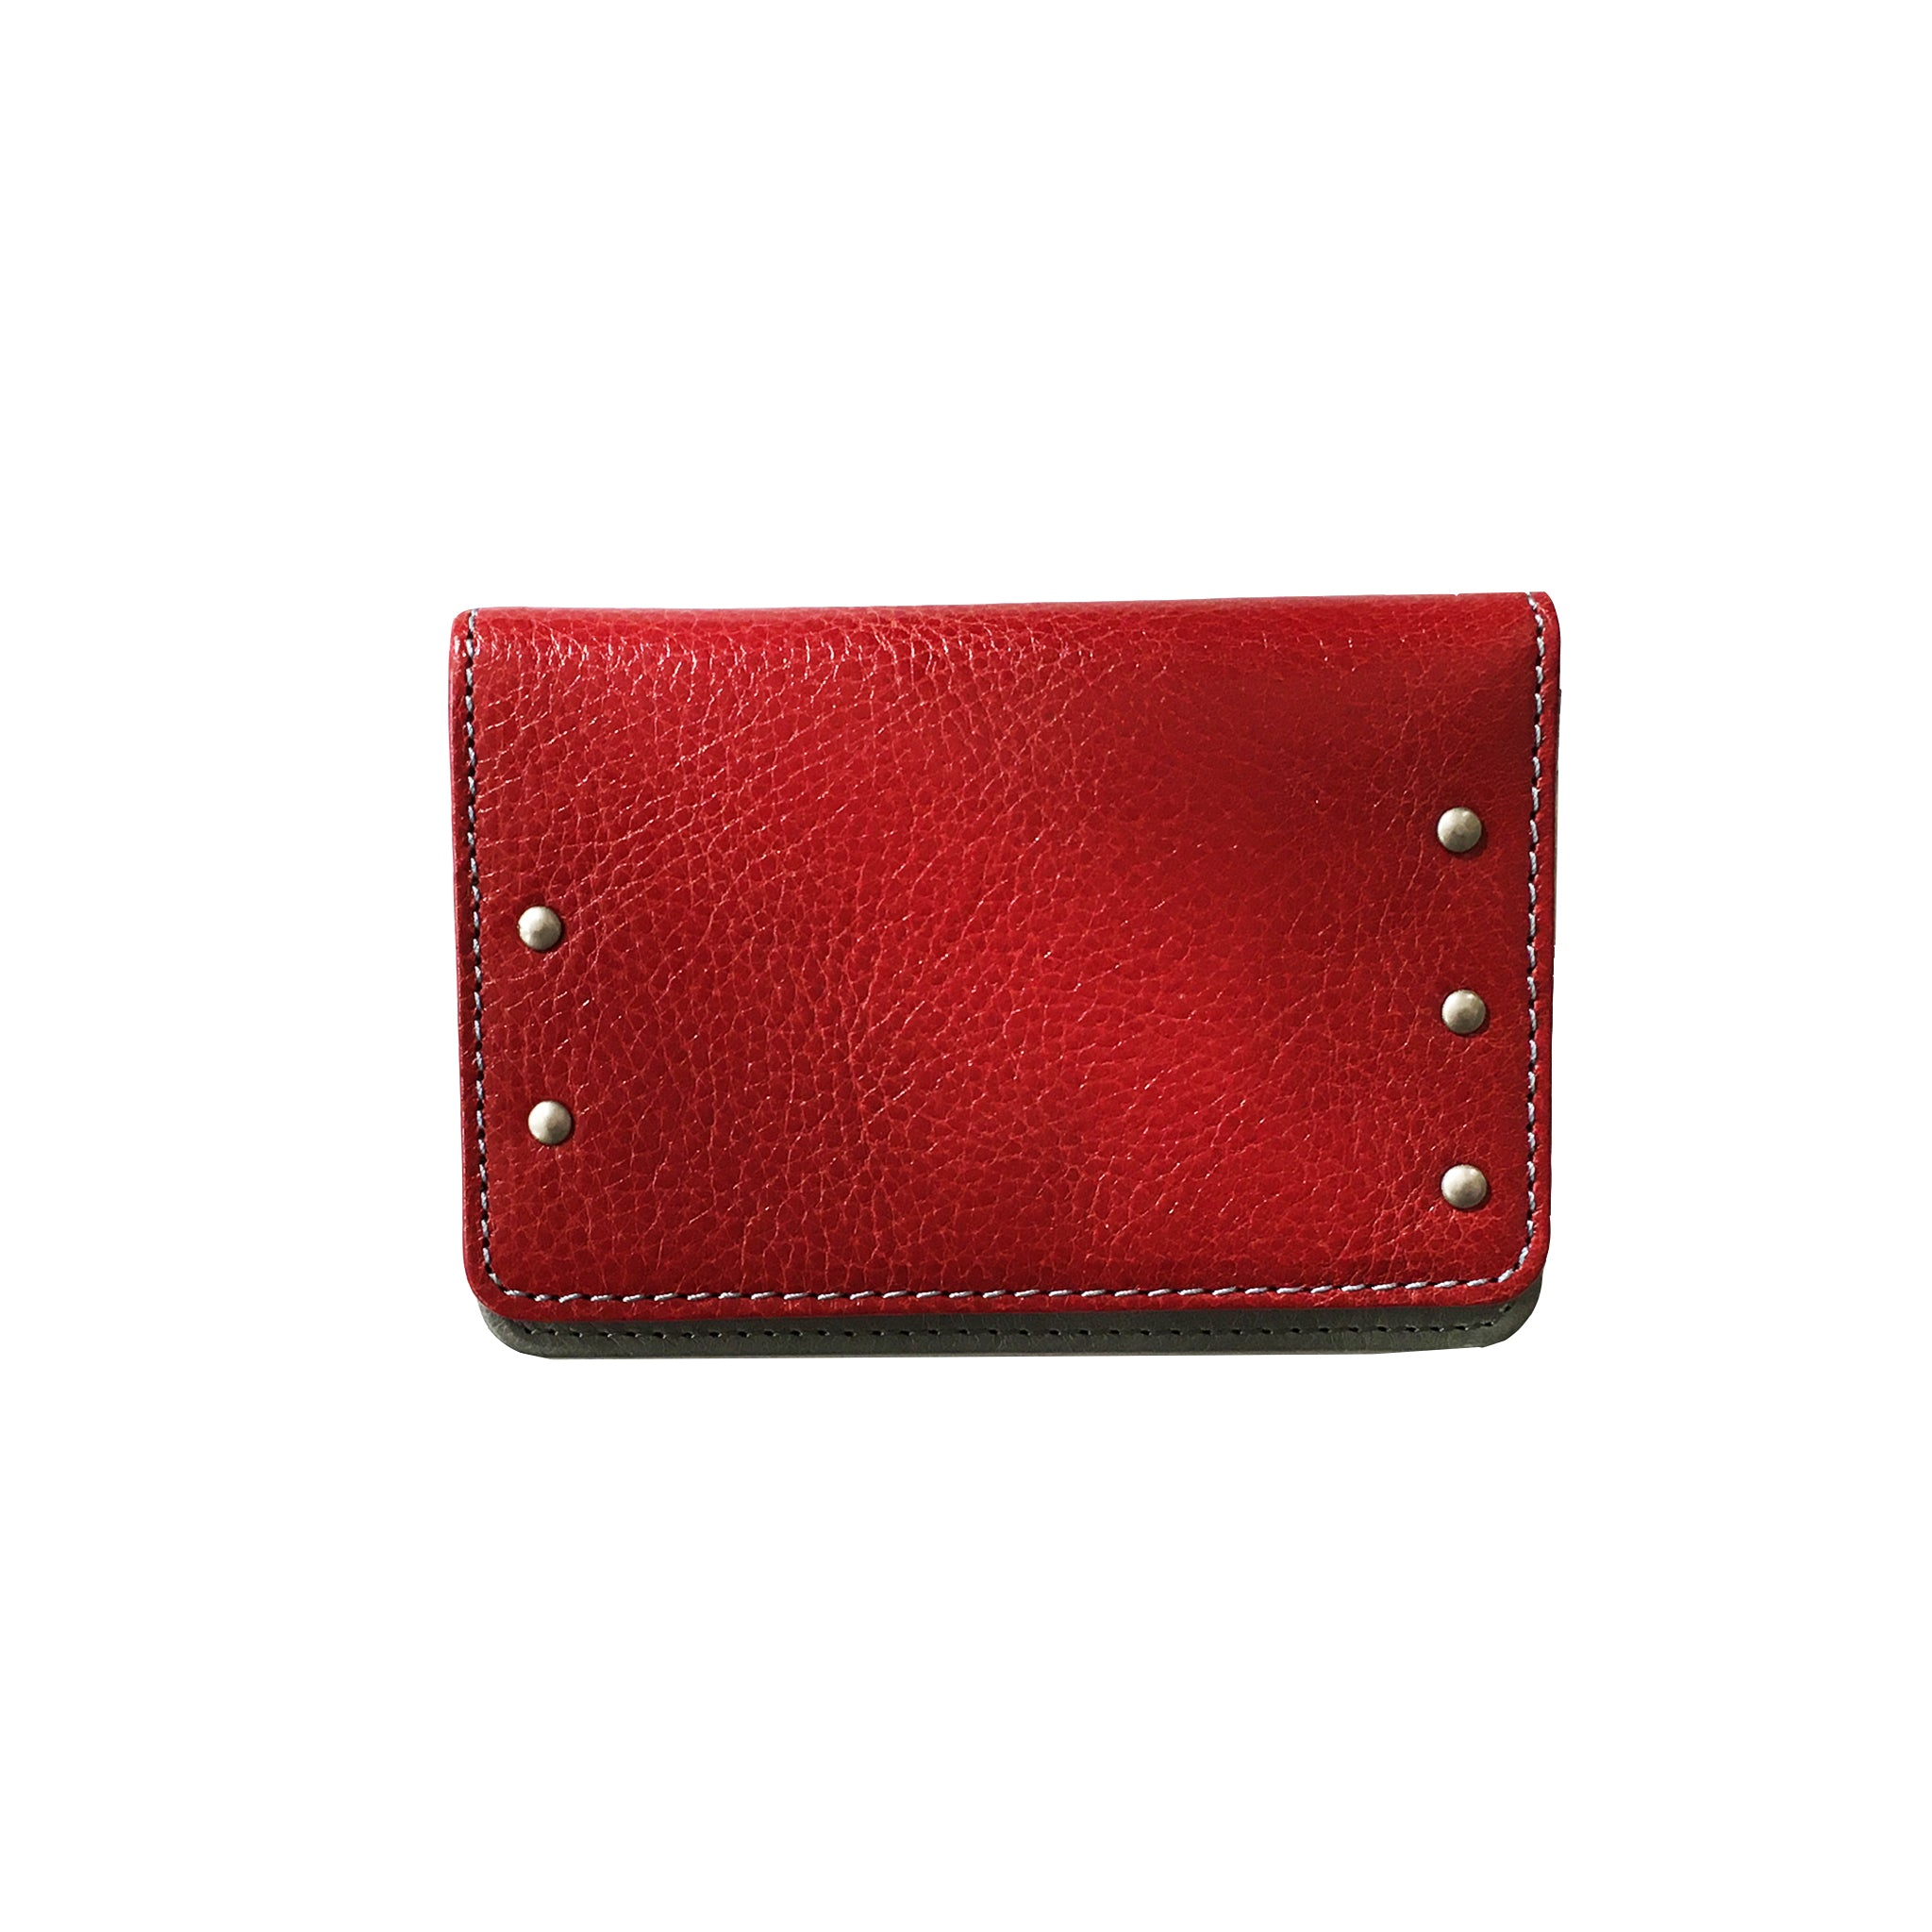 Highway Demi (B) - The Card Case | Red